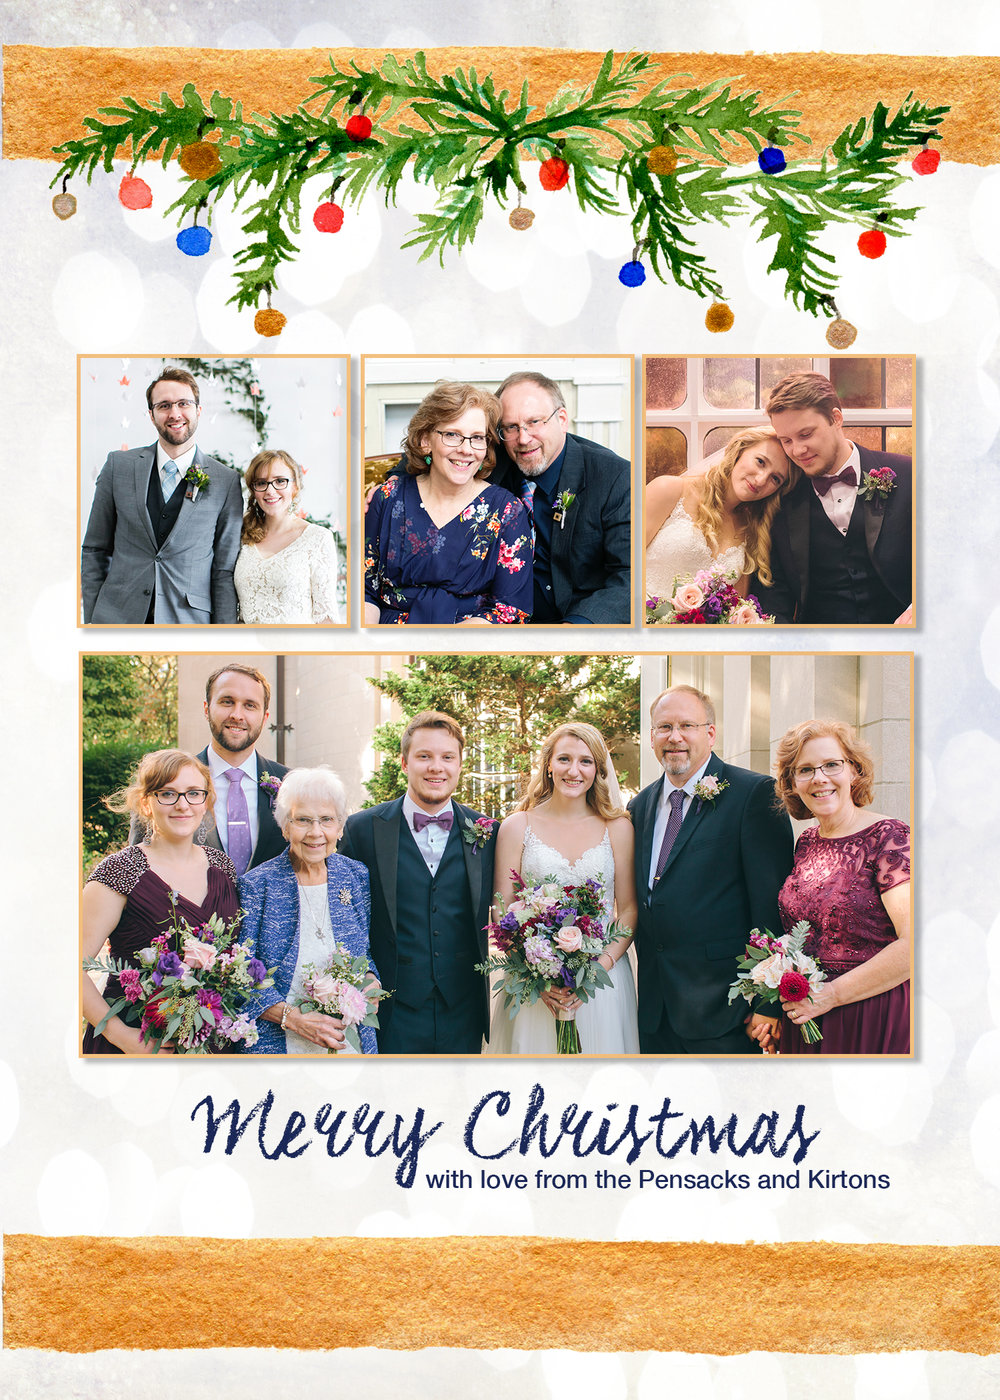 christmascard1.jpg